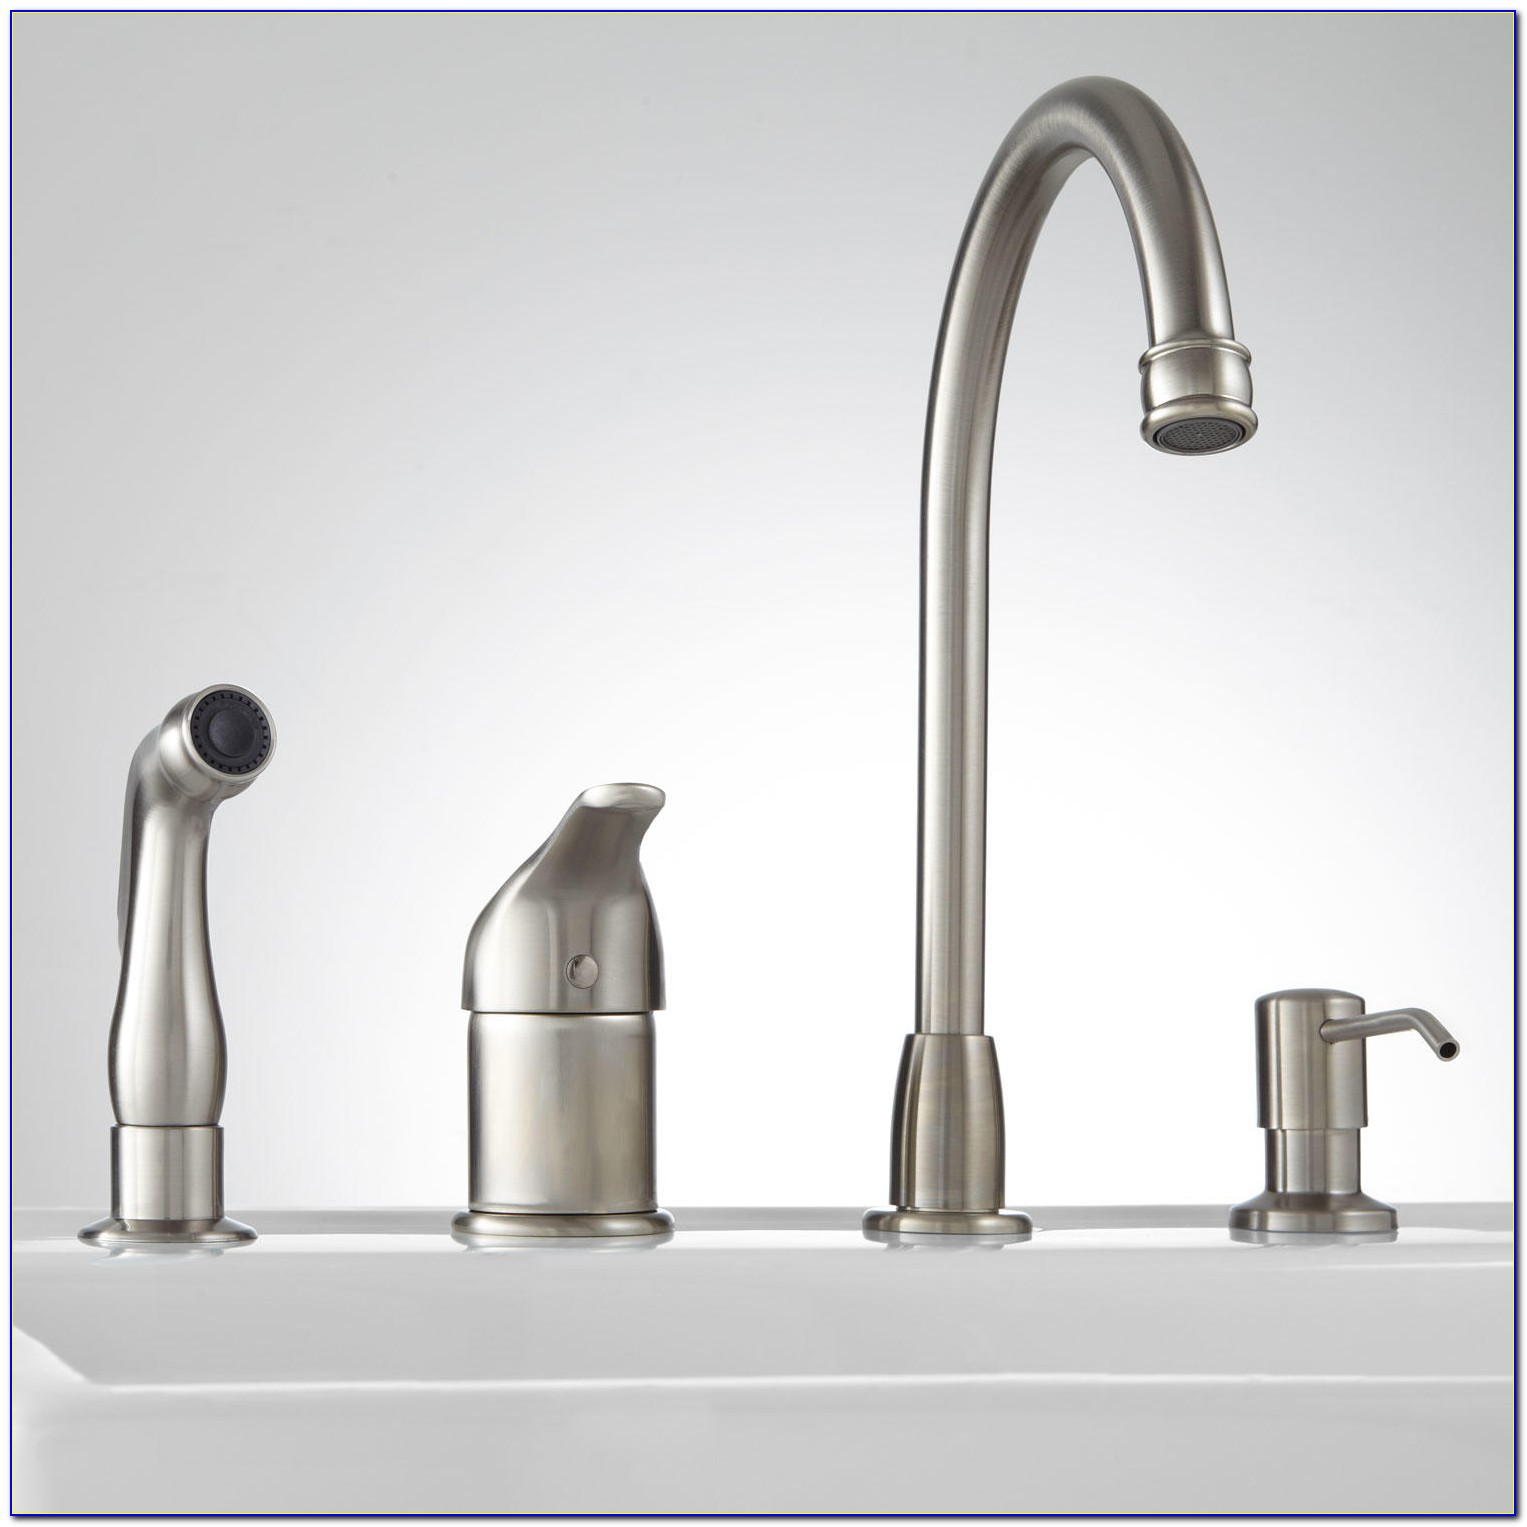 Moen Kitchen Faucet With Sprayer And Soap Dispenser